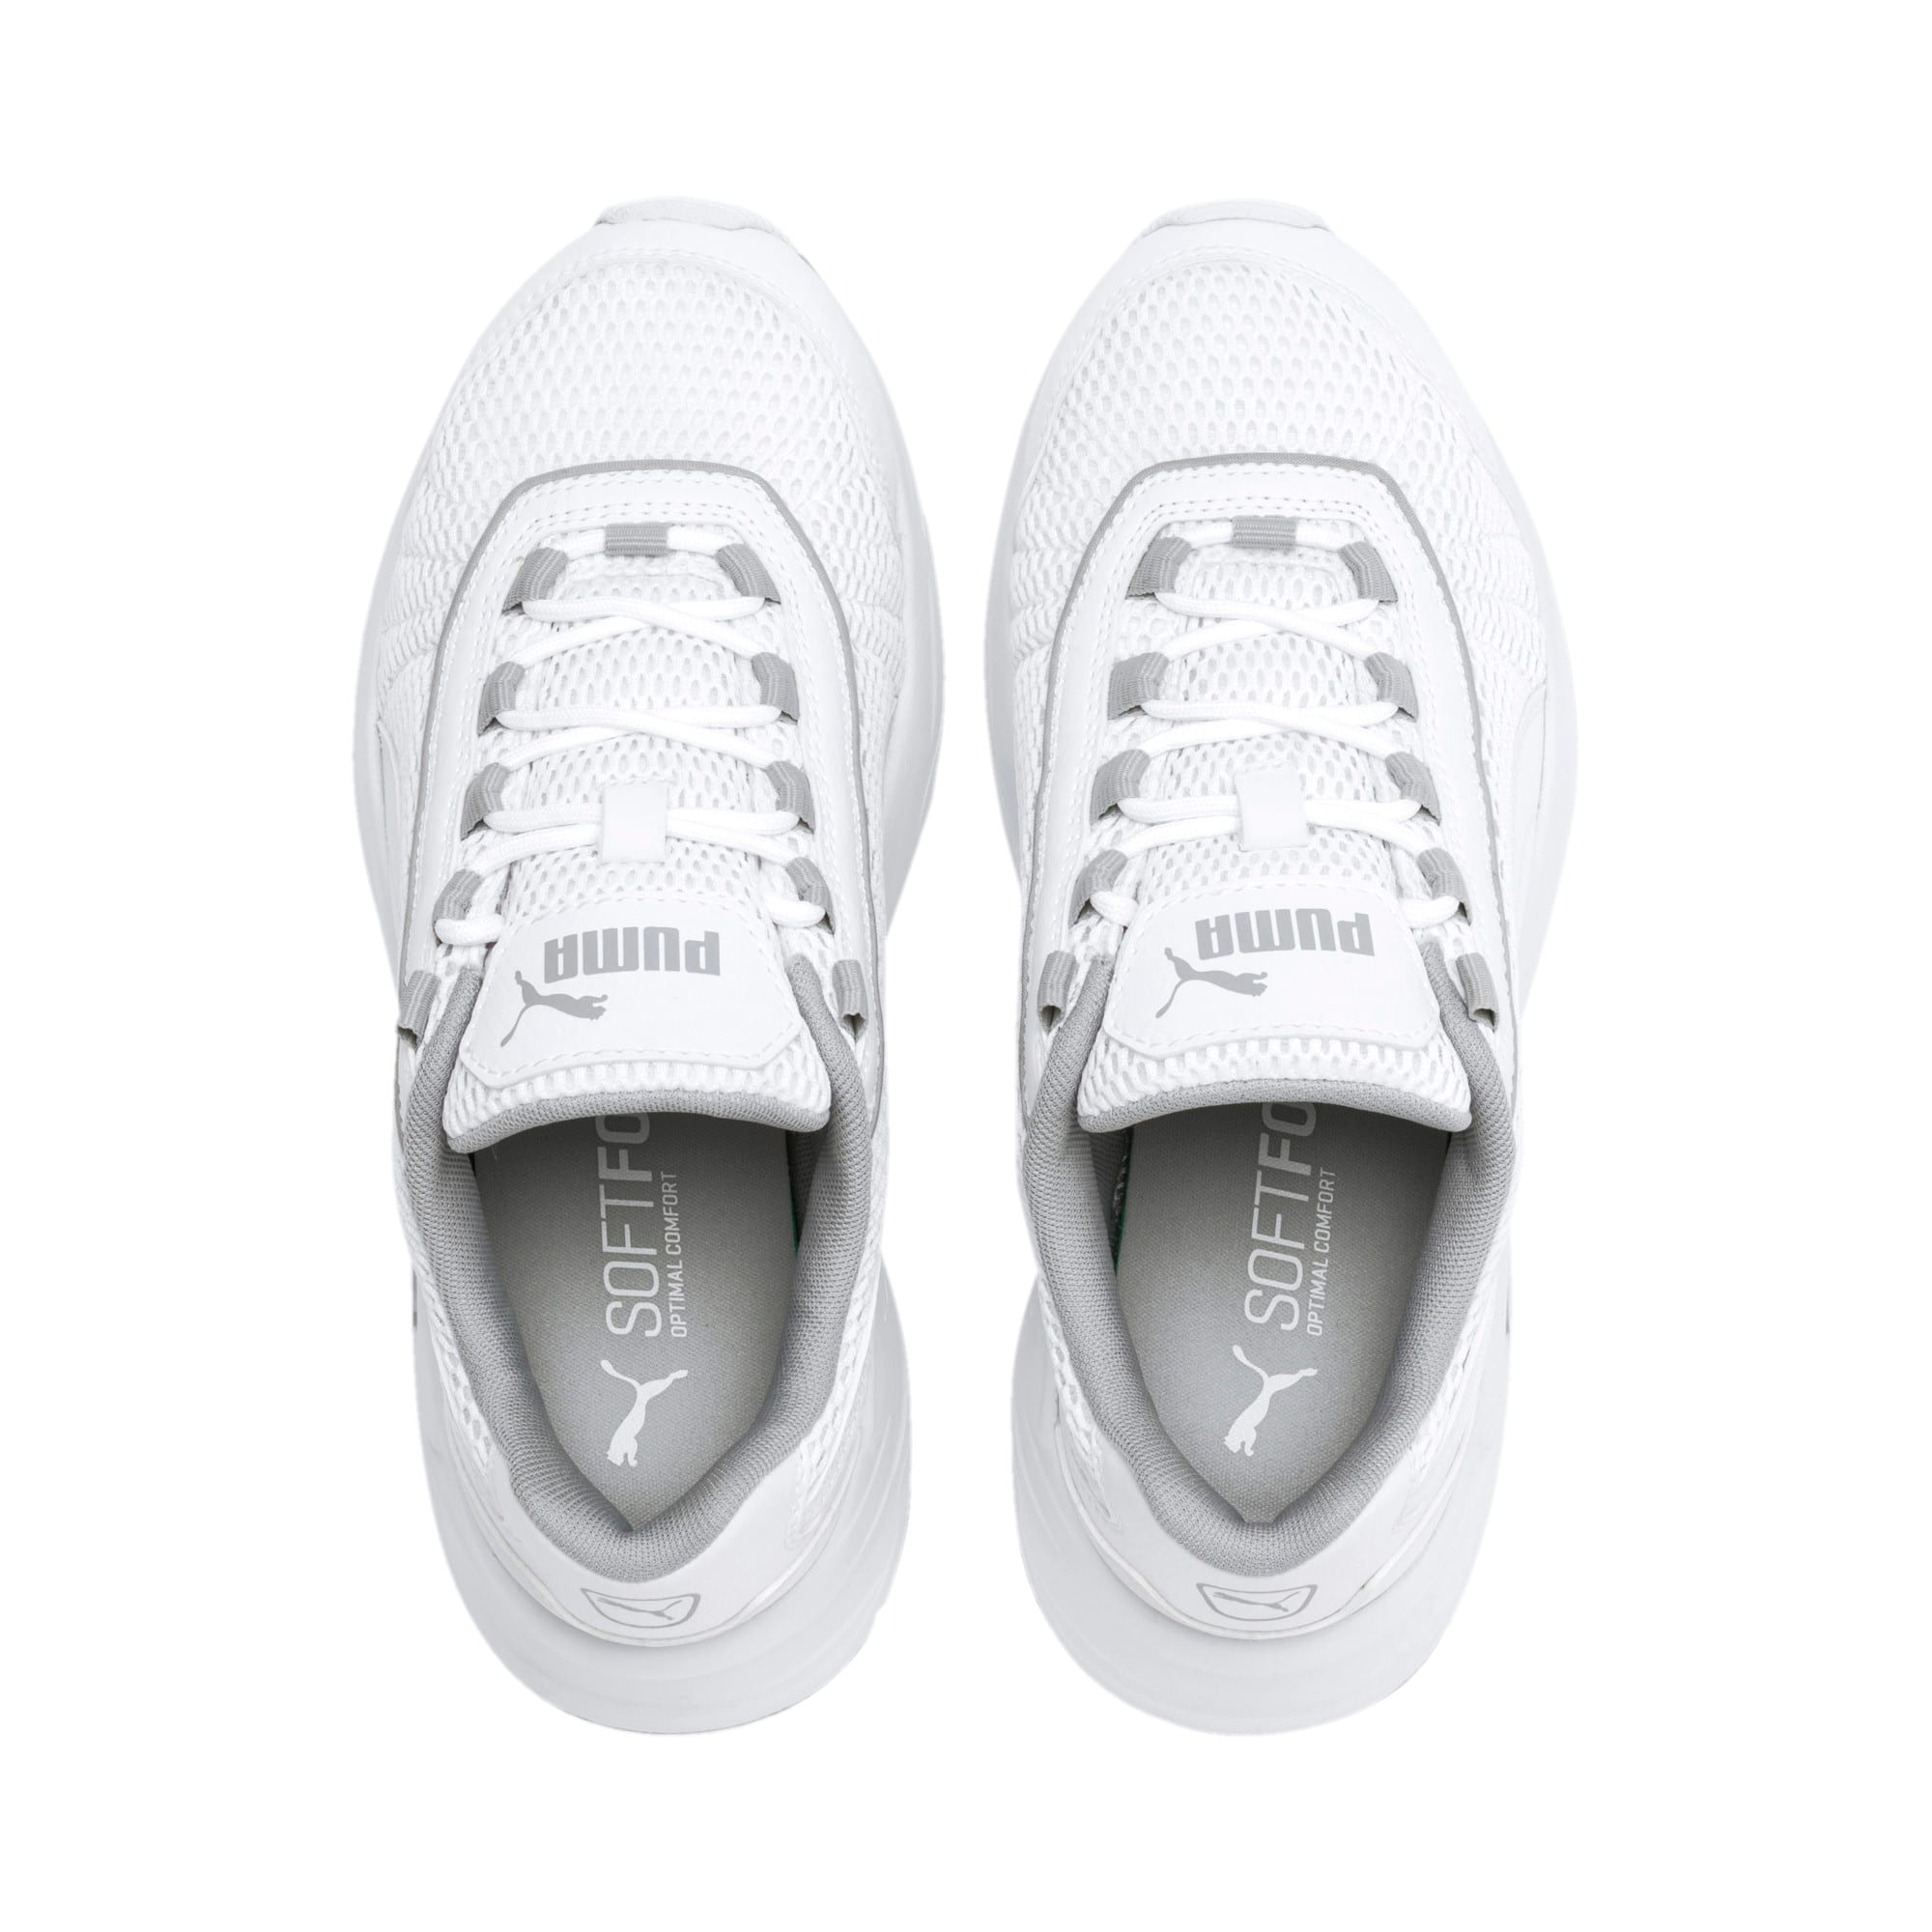 Thumbnail 6 of Nucleus Youth Trainers, Puma White-High Rise, medium